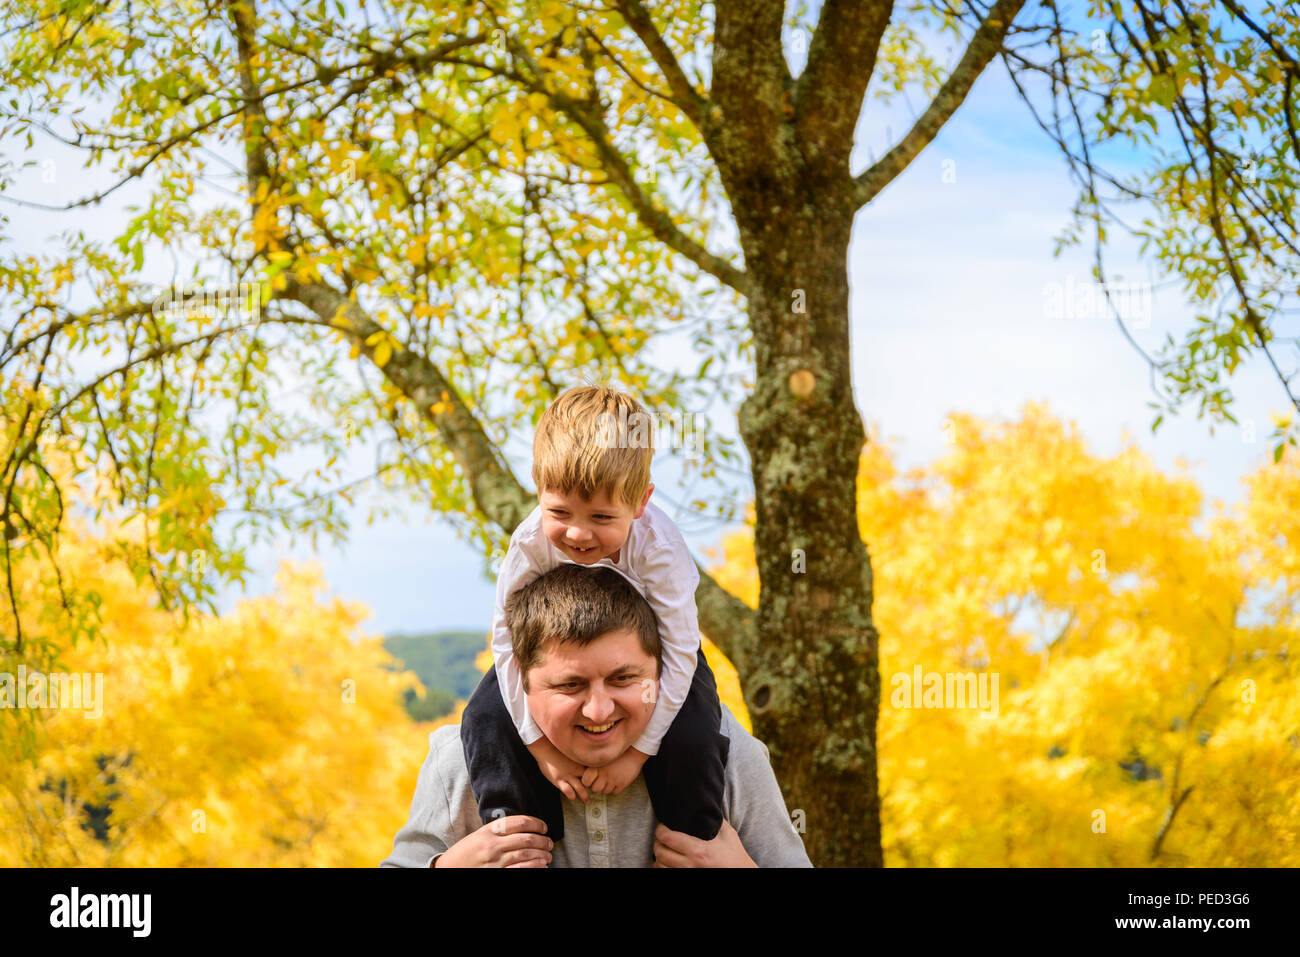 Father giving his son piggyback ride in autumn park, Adelaide Hills, South Australia - Stock Image